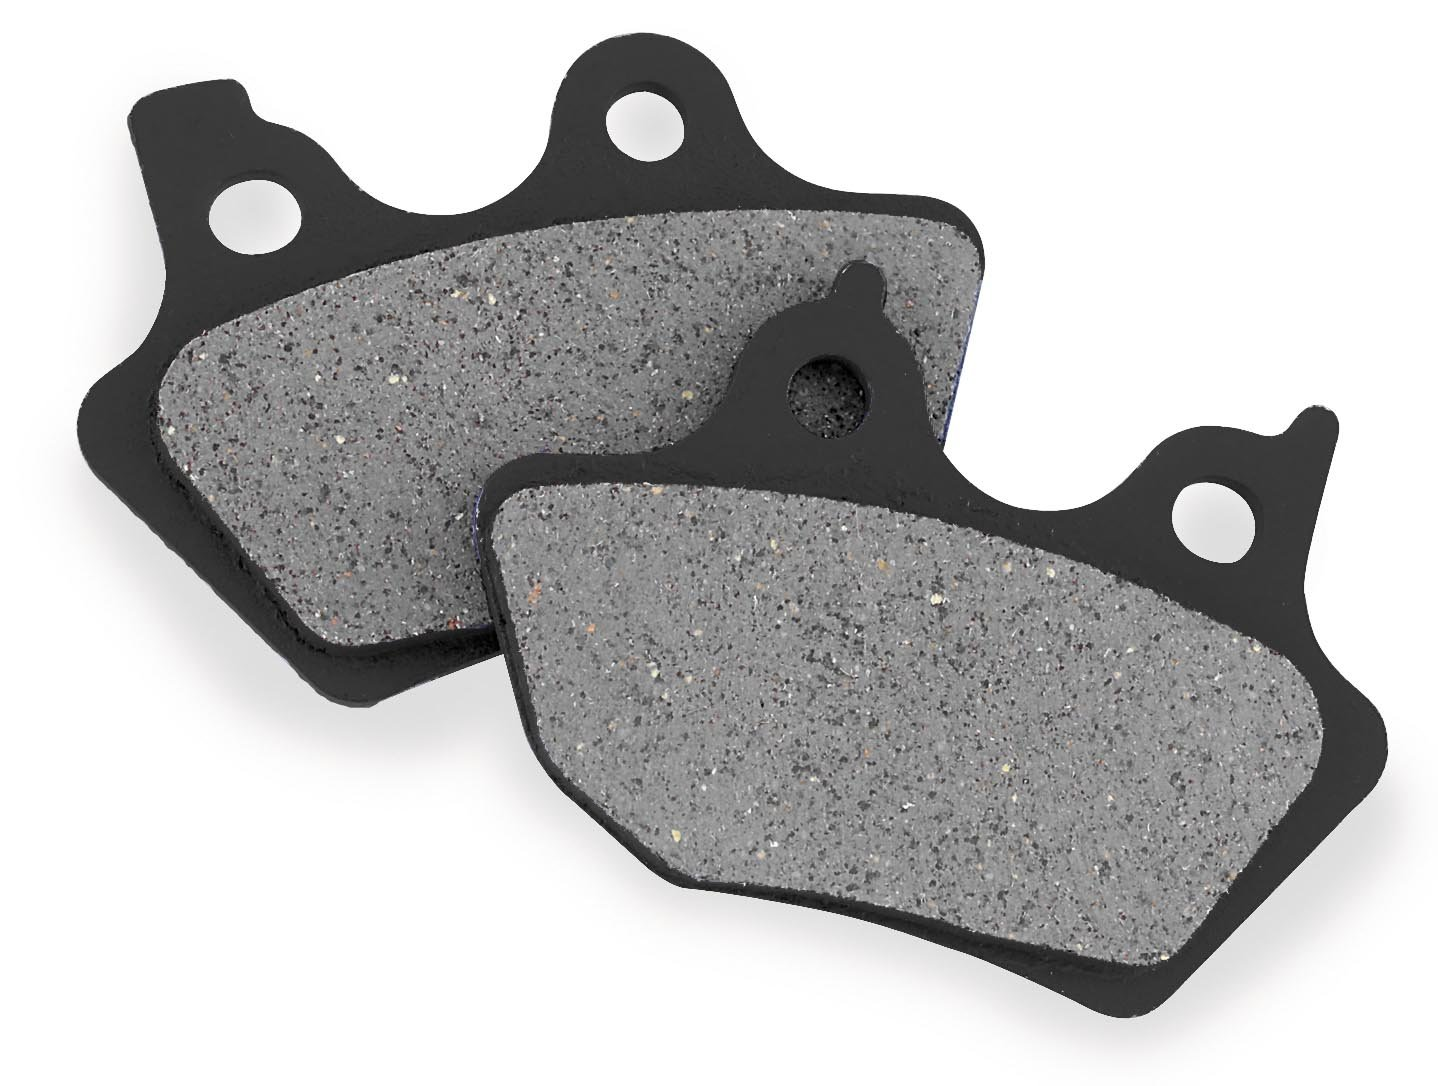 Lyndall Brakes Z-Plus Brake Pads Front or Rear 7195-Z+ Fits most 2000-2007 Harleys by Lyndall Racing Brakes